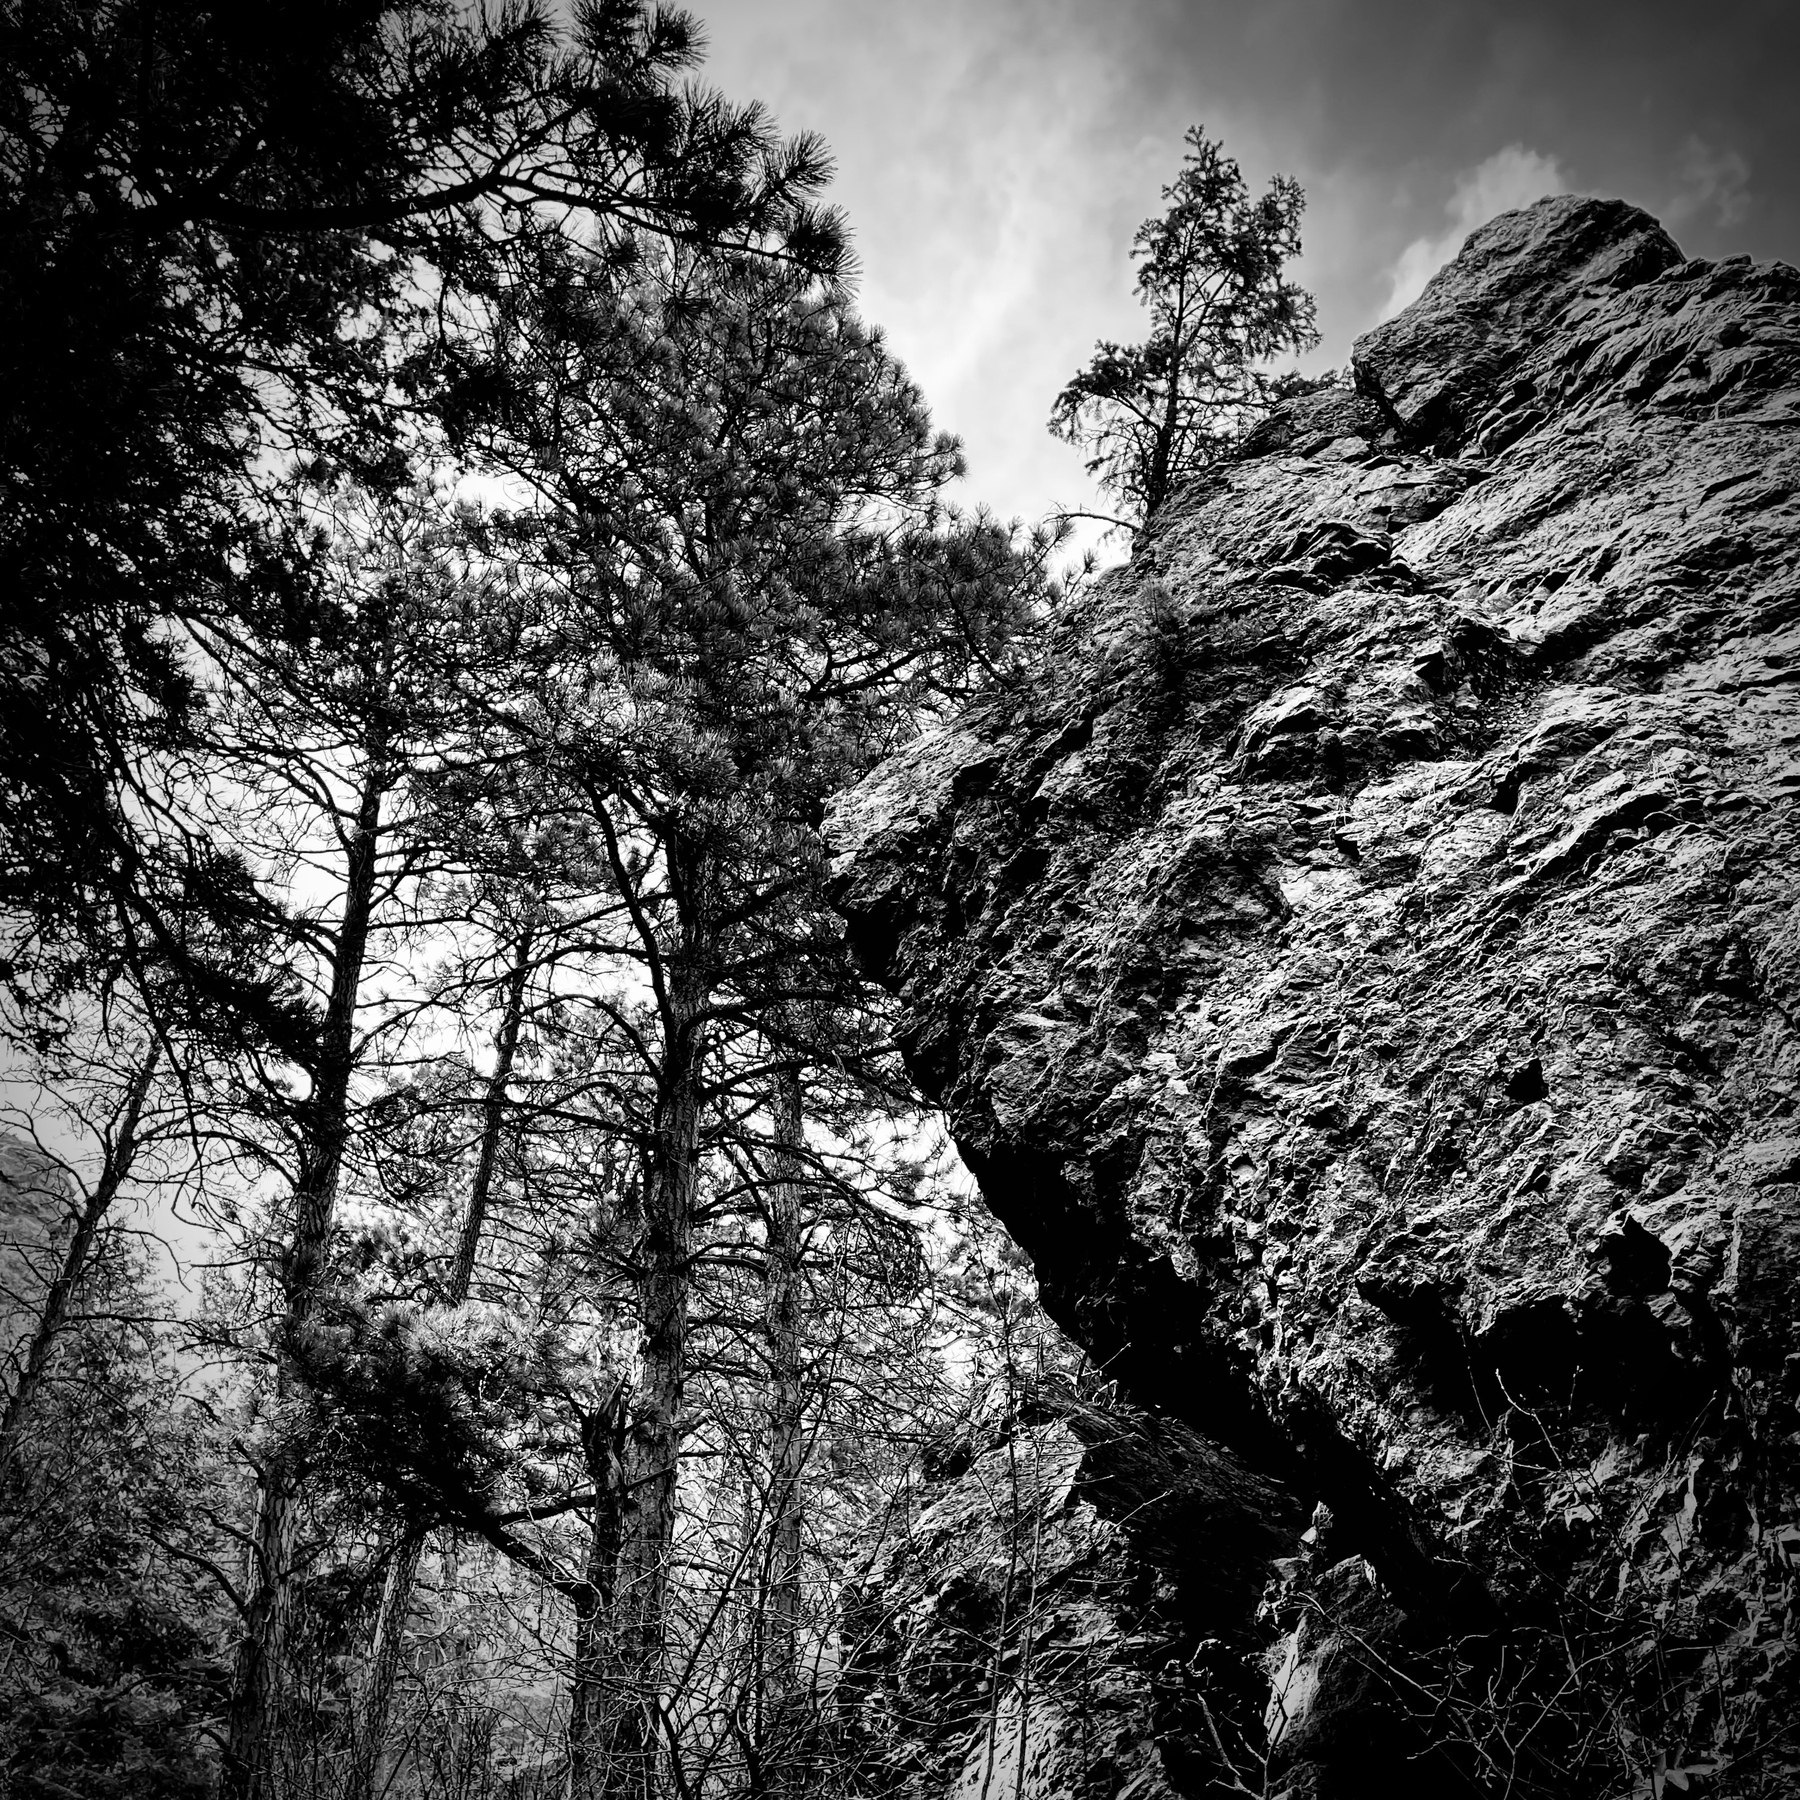 Rock face and pine trees against a Colorado afternoon sky.